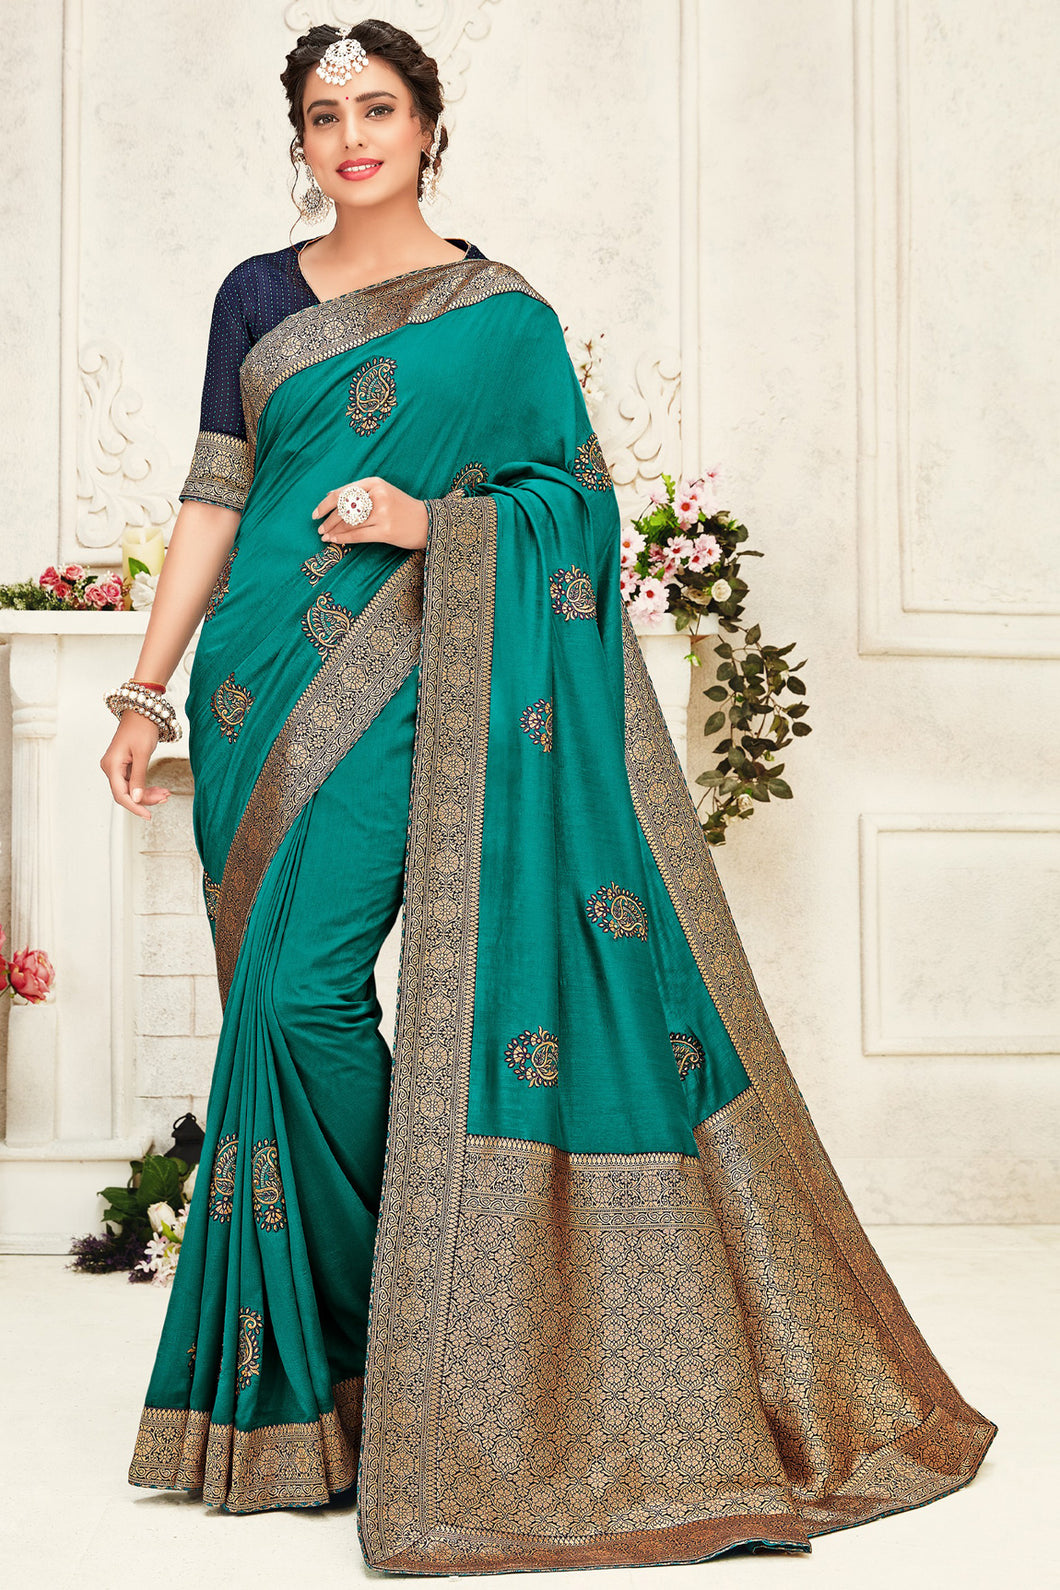 Bhelpuri Turqouis green Poly Silk Embroidered with jaqcard Pallu Traditional Saree with Blouse Piece